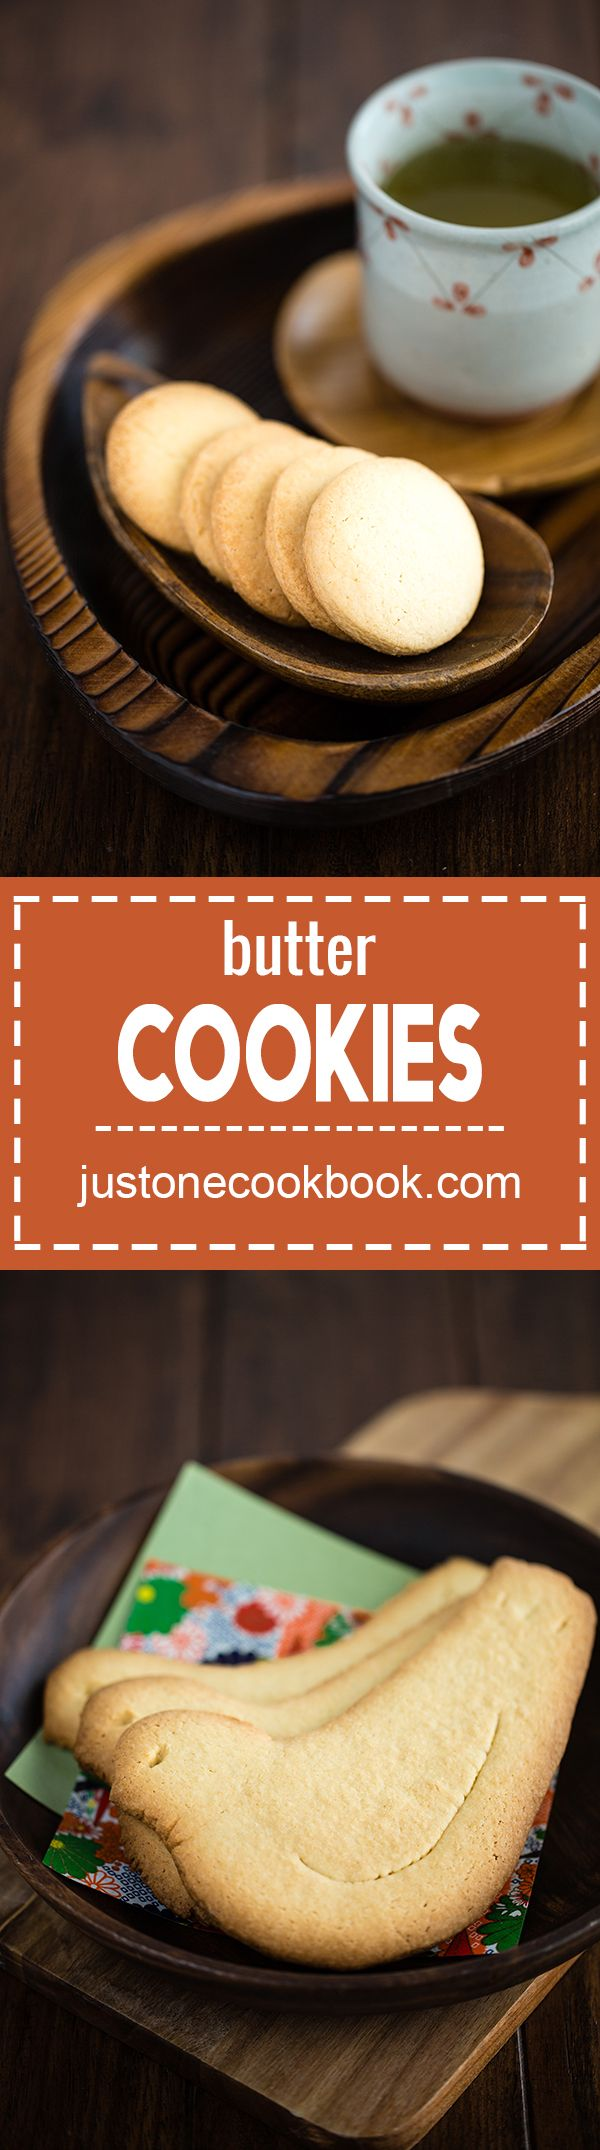 Butter Cookies (Hato Sable) 鳩サブレー | Easy Japanese Recipes at JustOneCookbook.com